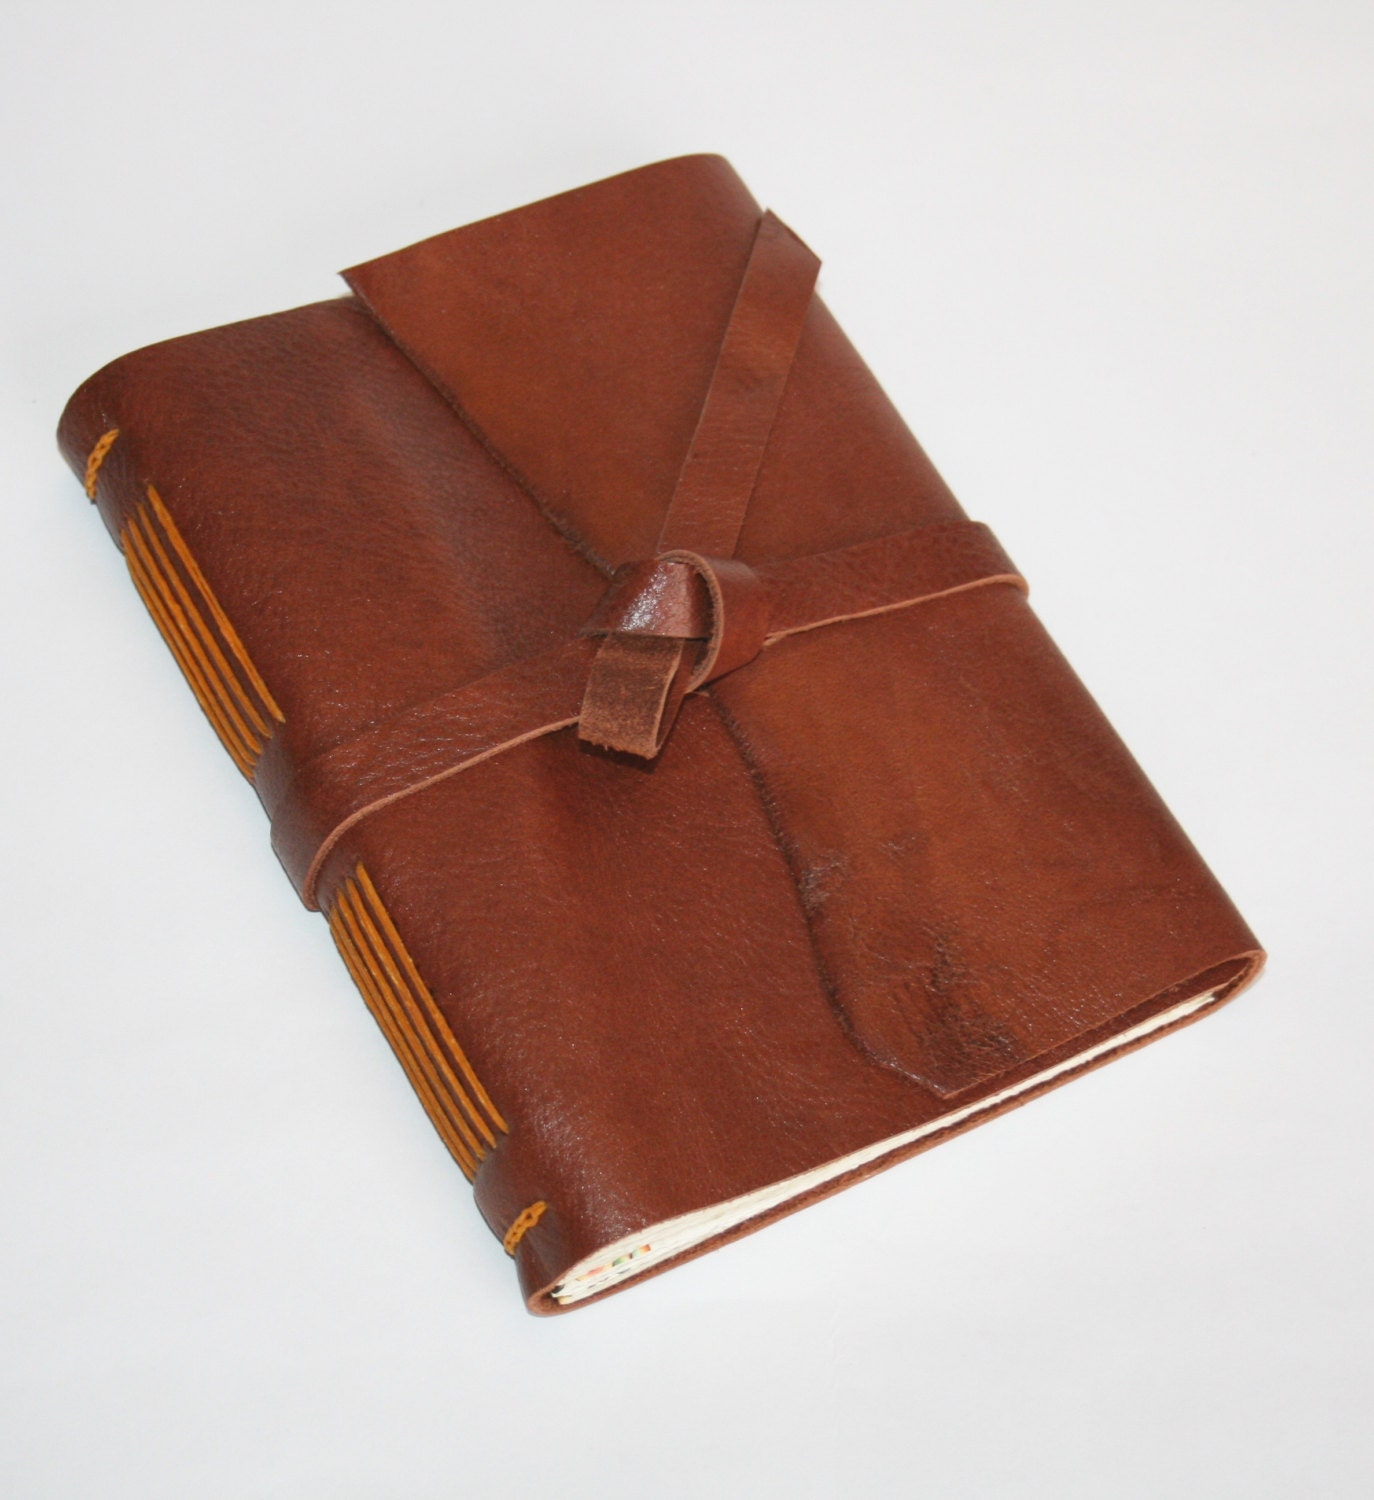 Custom Made Leather Journal Leather Journals Handmade